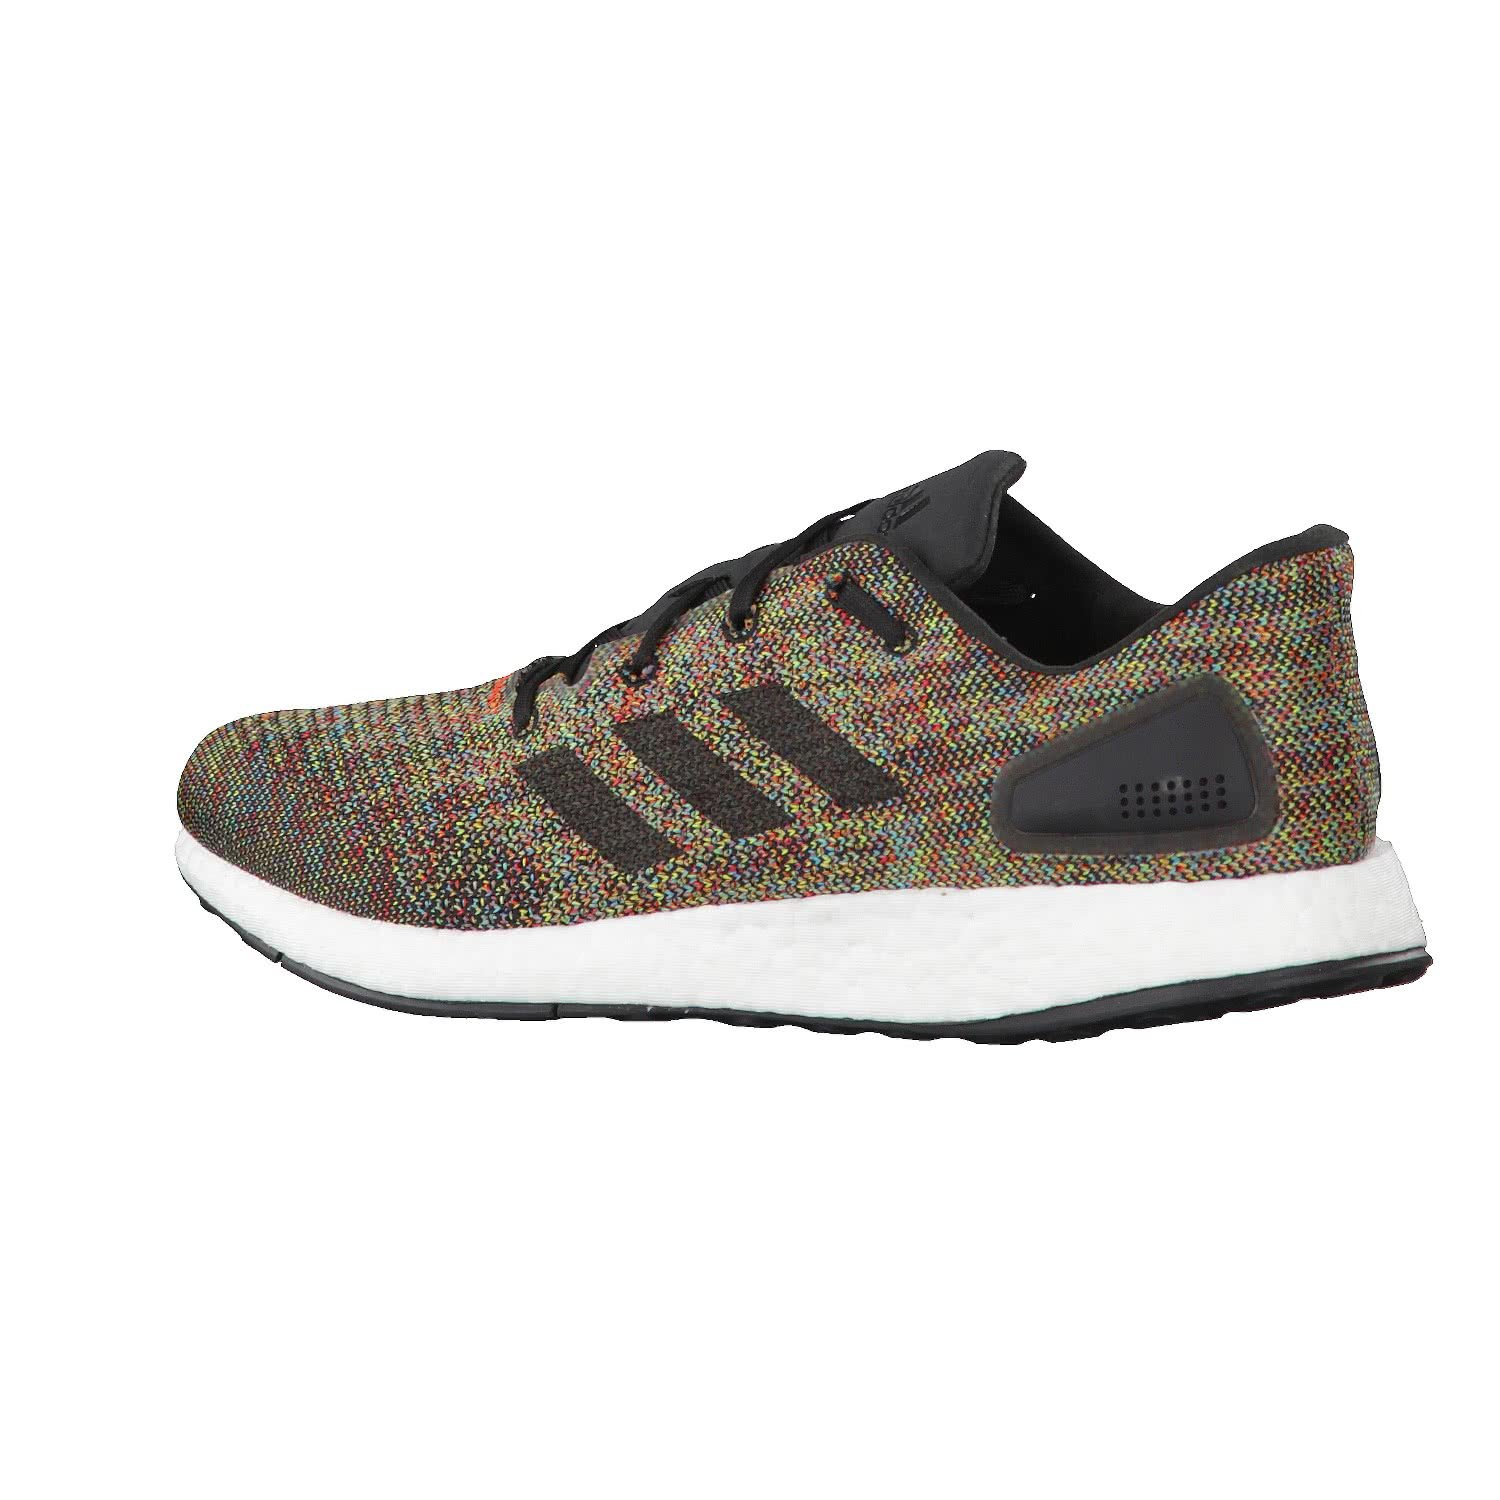 edfe5dcf65c8e Adidas Pure Boost DPR Limited Edition Mens Running Shoes-10 Multi-Color  Black  Amazon.ca  Shoes   Handbags